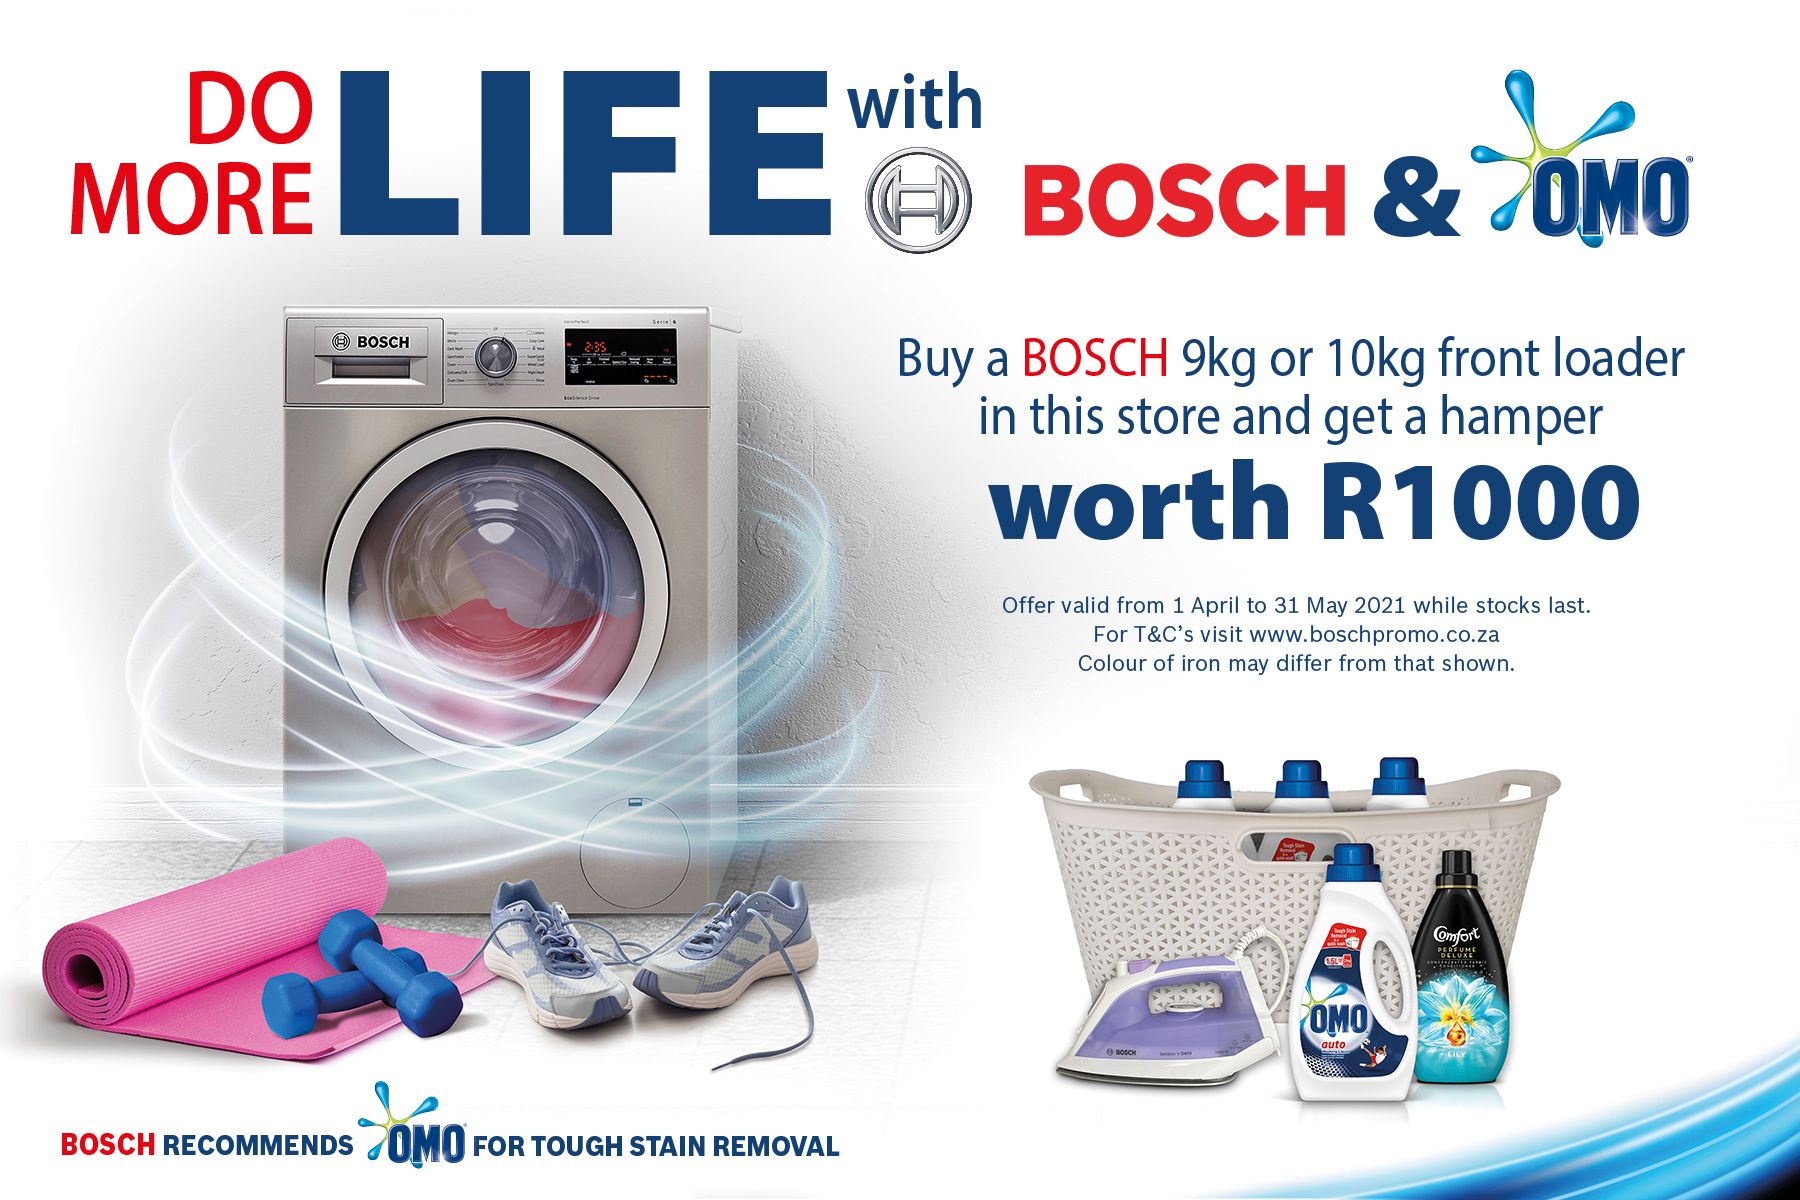 OMO and Bosch competition, products and logos surrounded by laundry items and gym equipment